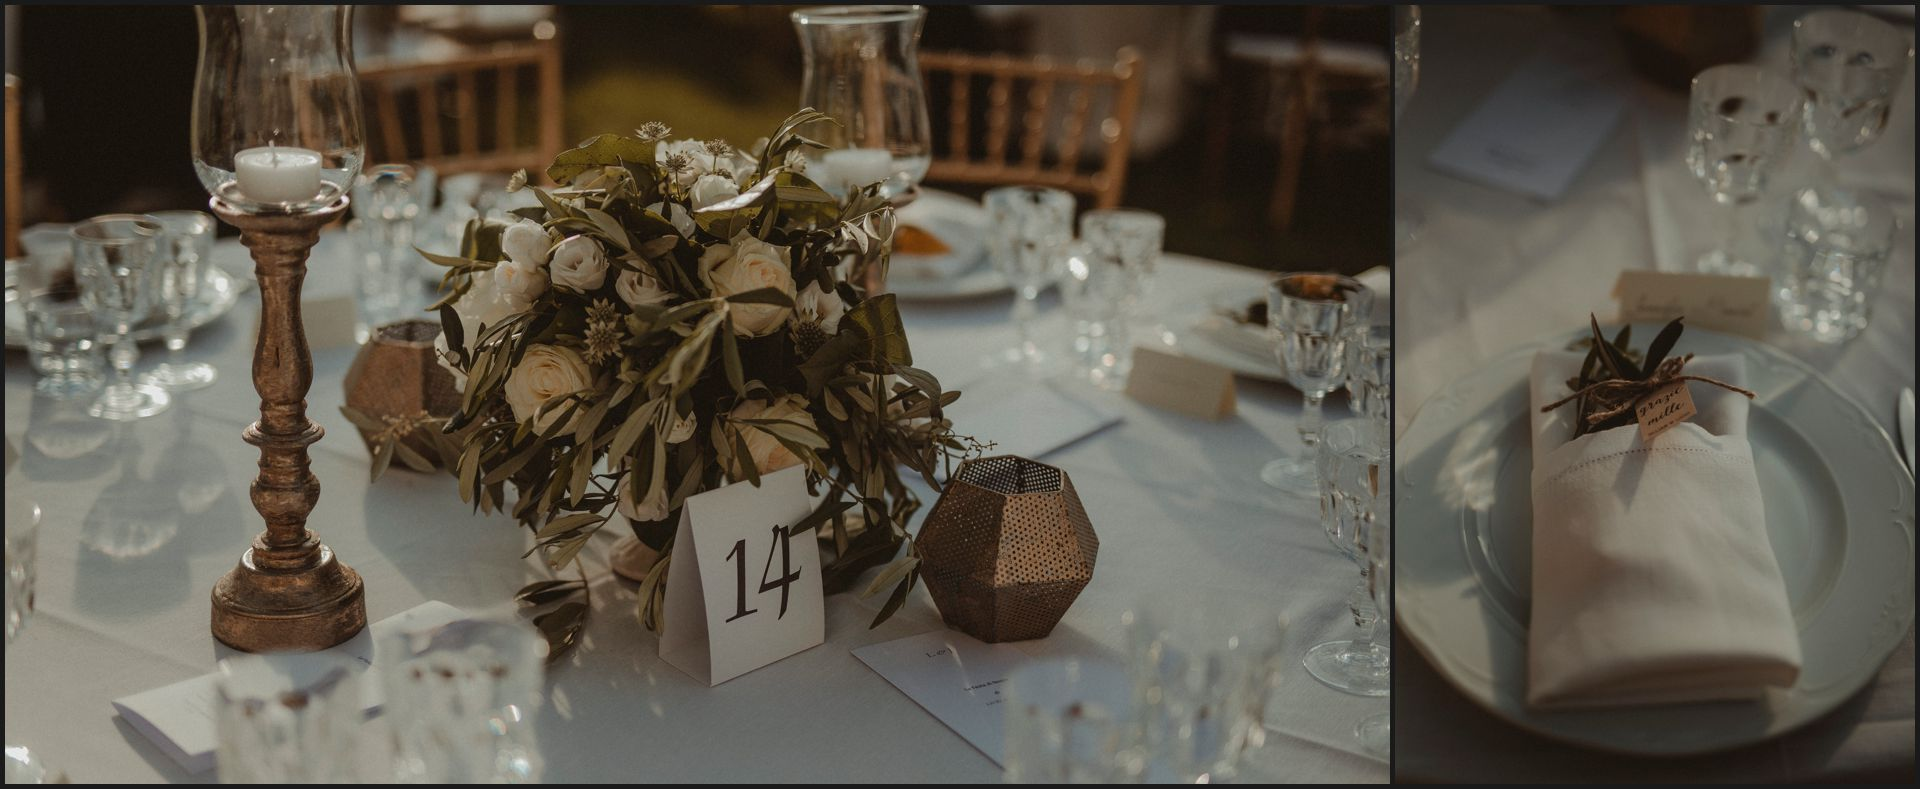 tenuta di canonica, umbria, wedding, table set